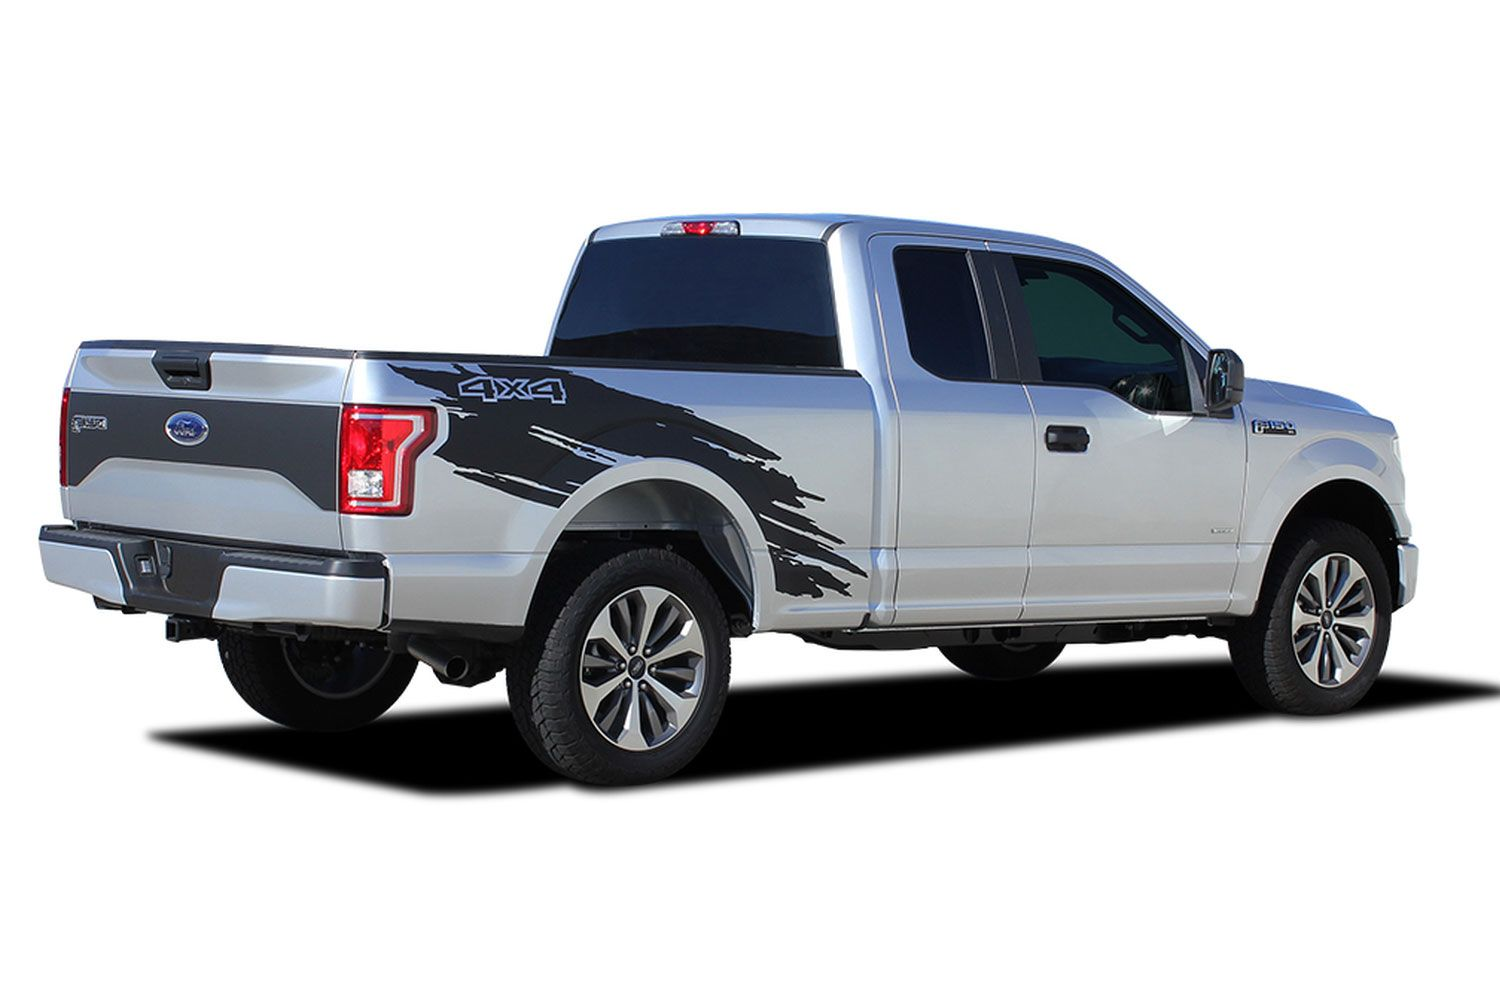 2015 2016 2017 2018 2019 ford f 150 torn vinyl graphics side truck bed decal mudslinger vinyl stripes kit